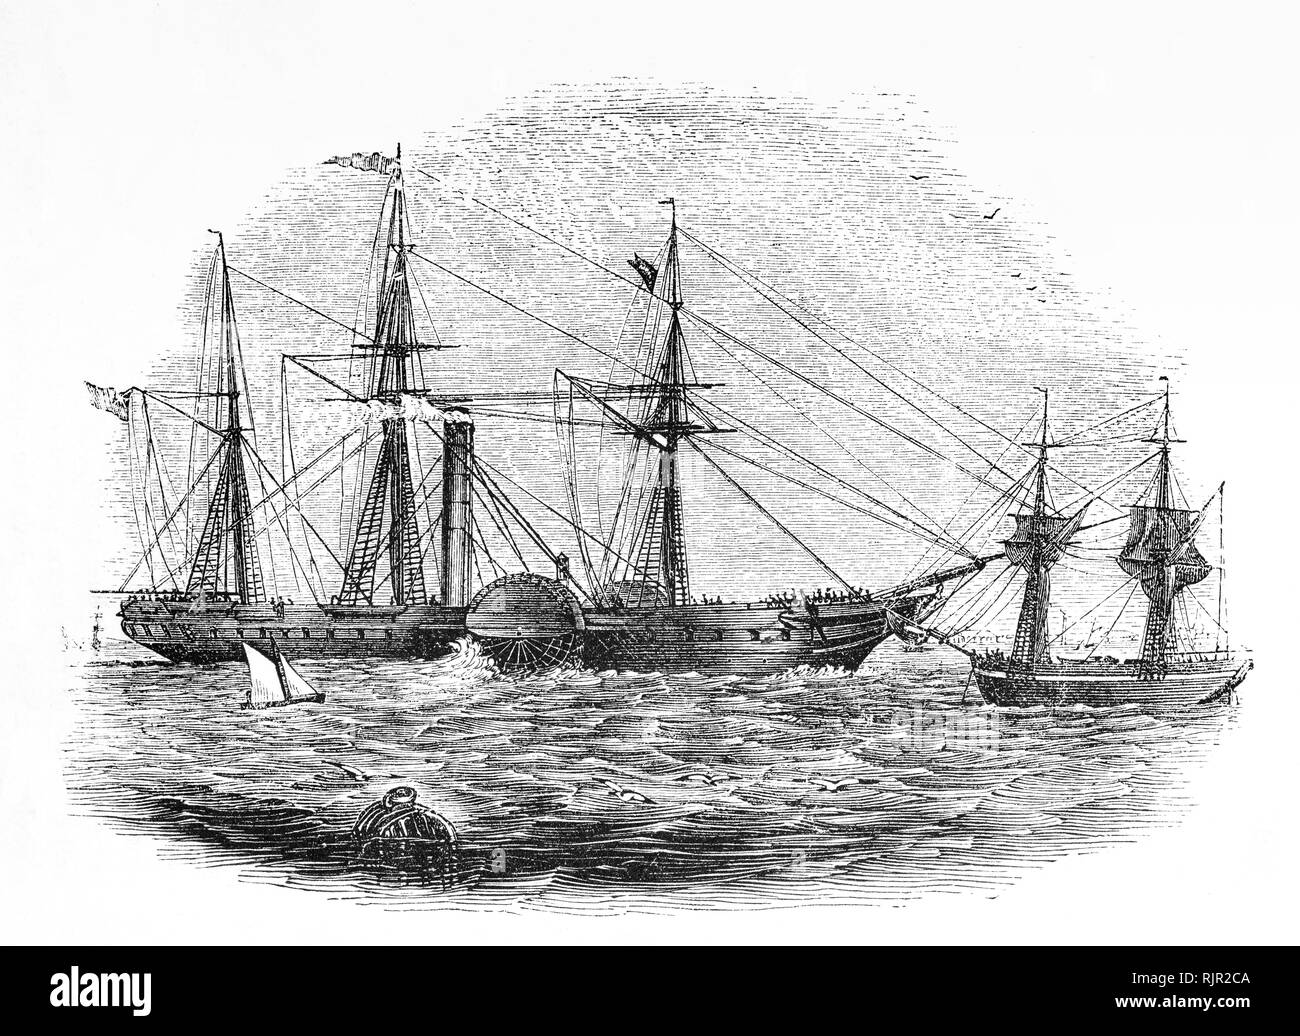 During the 18th Century, sailing ships made the journey from Europe to America. However, they were at the mercy of the weather and journey times could vary from 14 days to four weeks, and people  increasingly looked towards steam propulsion as a means of overcoming the problems of sail. The first paddle-steamer to make a long ocean voyage crossing the Atlantic Ocean  set out for Liverpool on May 22, 1819, sighting Ireland after 23 days at sea. In mid 19th Century, a number of paddle-steamers were crossing the Atlantic, but  became much less useful after the invention of the screw propeller. - Stock Image